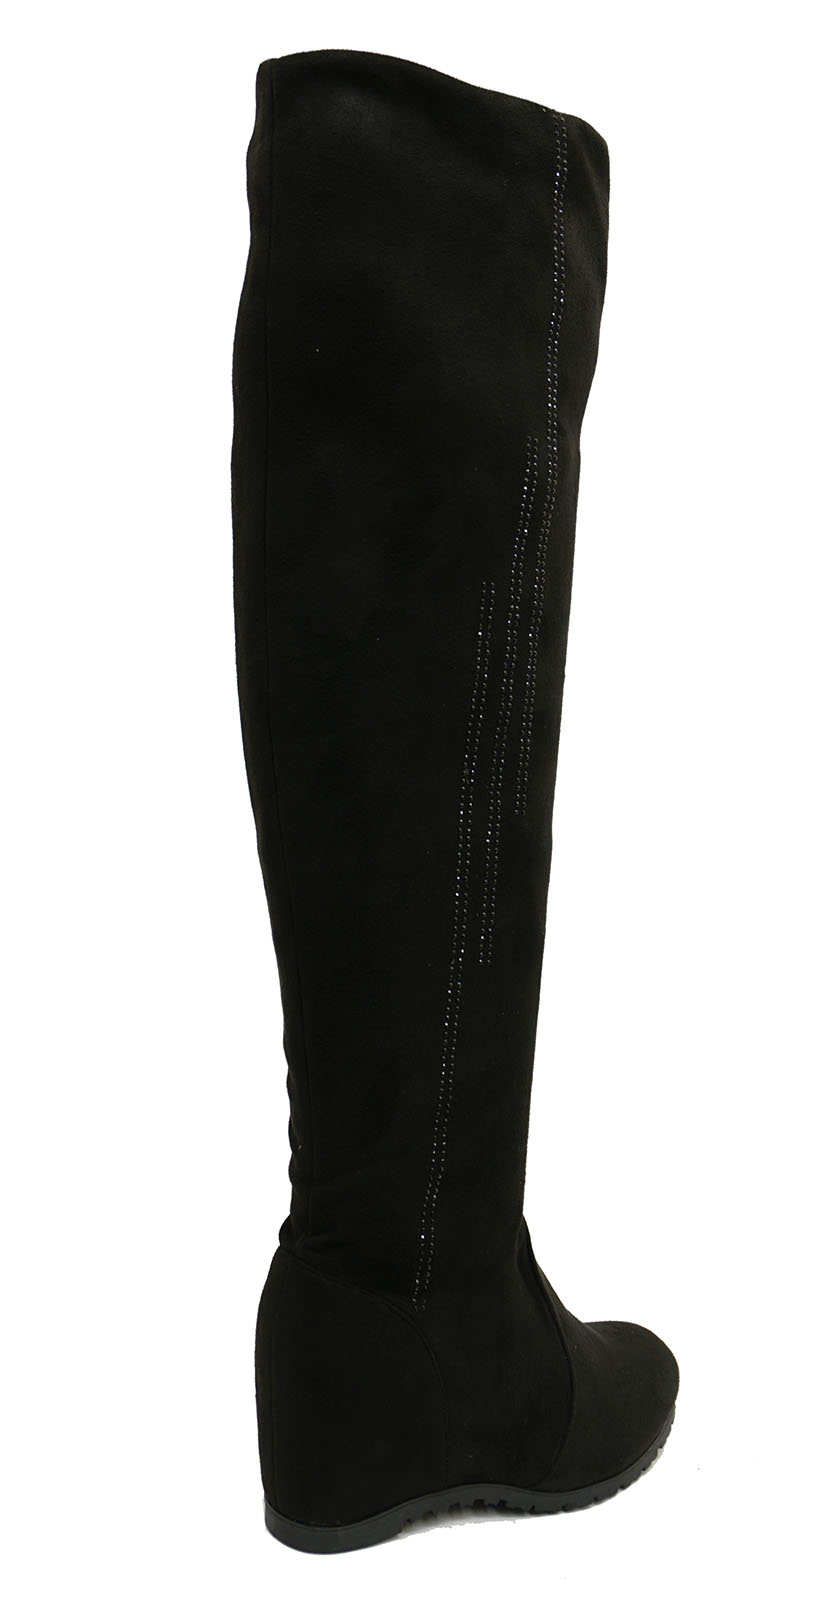 ac9e509507a Sentinel LADIES BLACK SOFT STRETCH OVER THE KNEE HIGH RUCHED WEDGE BOOTS  SHOES UK 3-8